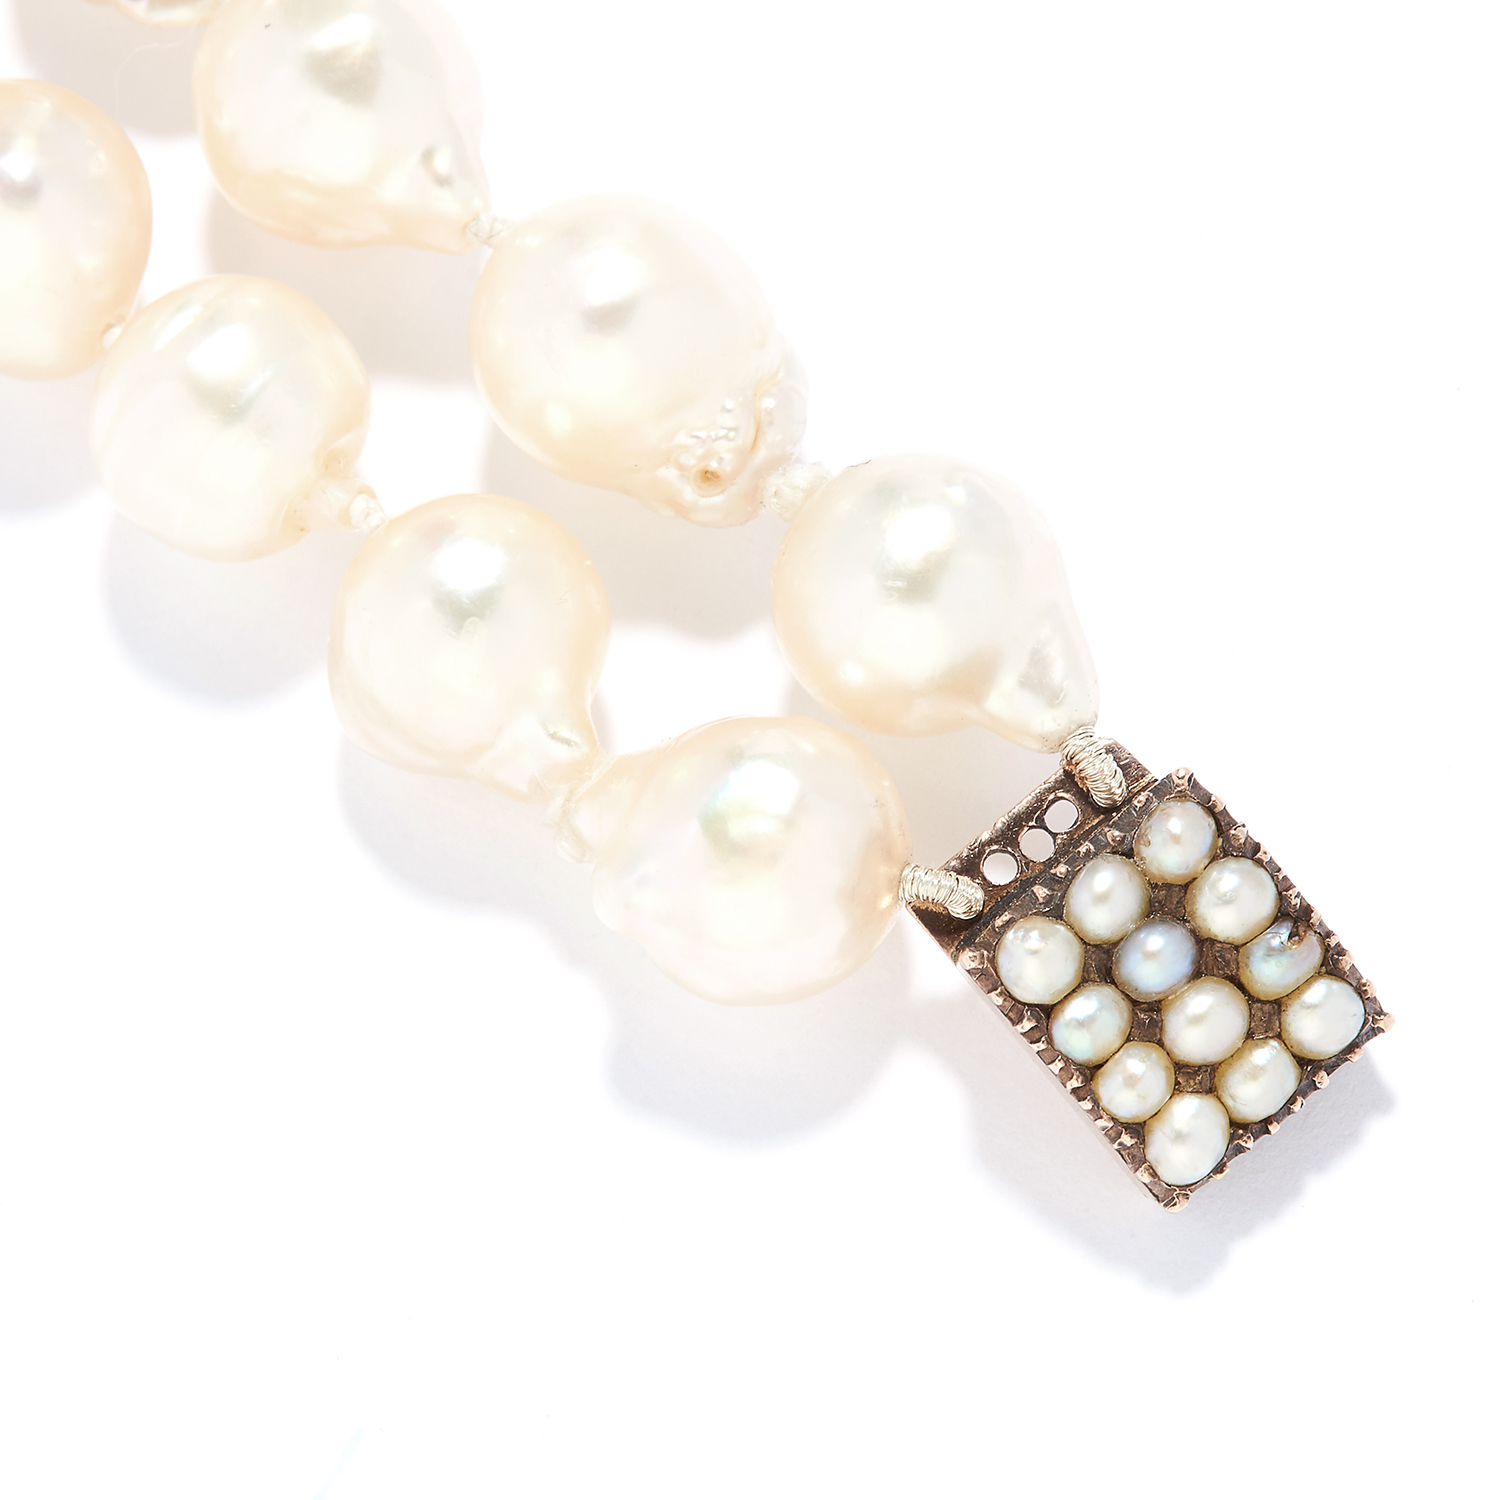 ANTIQUE TWO STRAND PEARL BEAD BRACELET in yellow gold, comprising of two rows of baroque pearls on a - Bild 2 aus 2